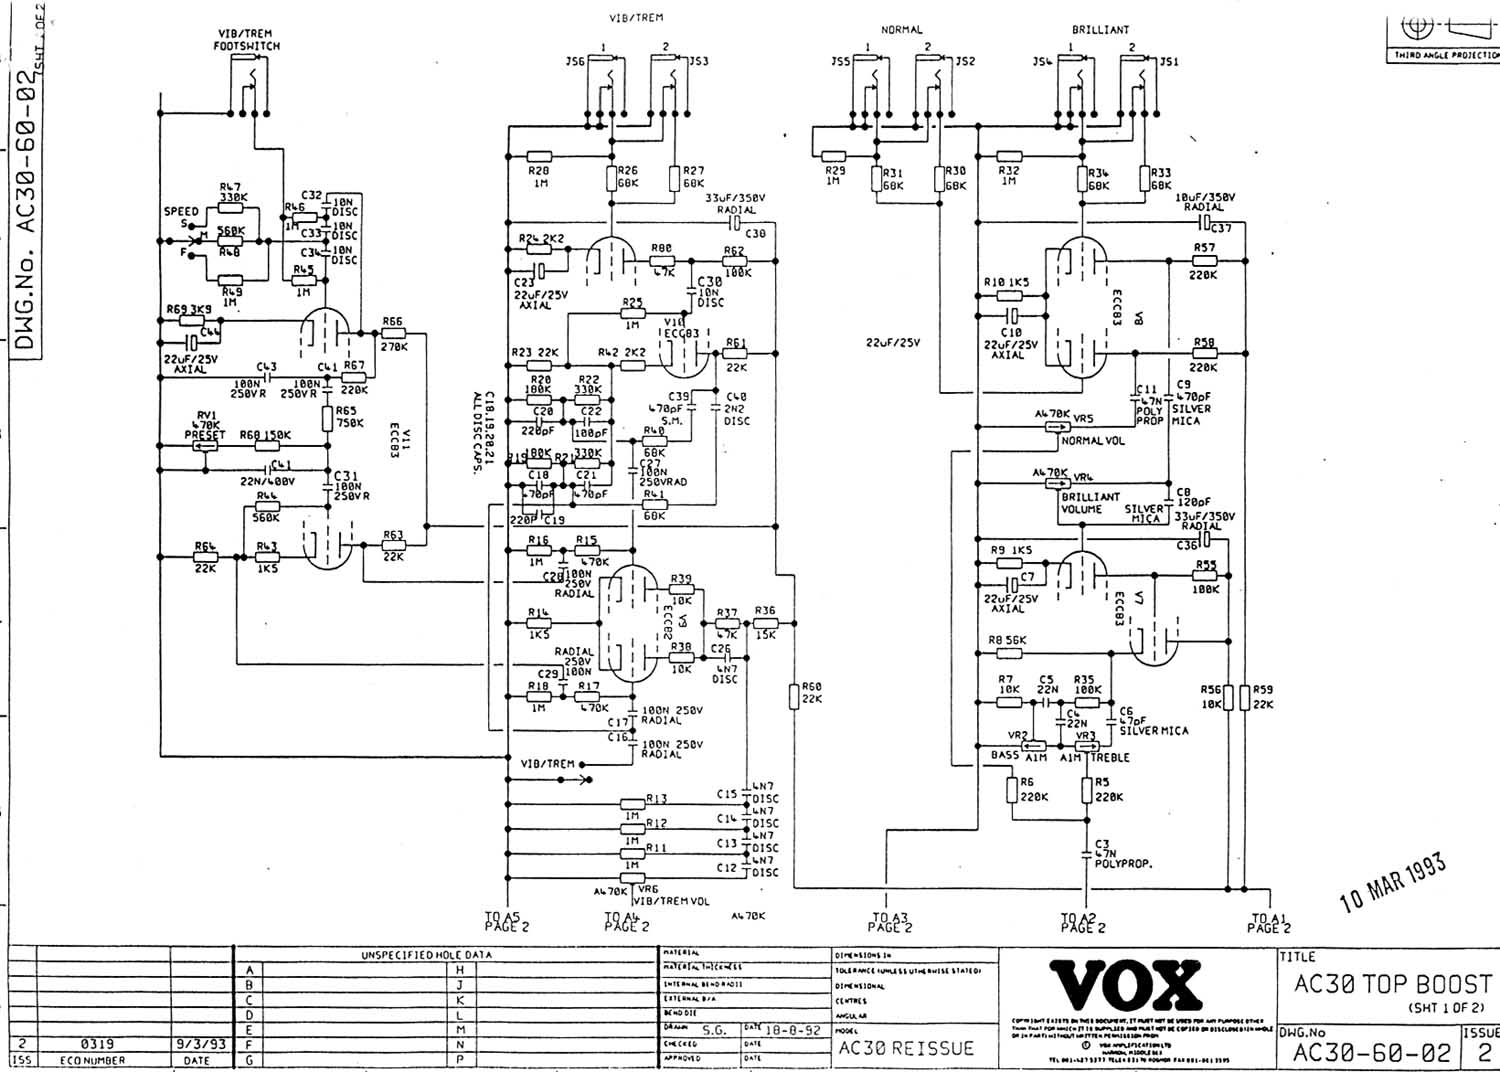 Vox Vintage Circuit Diagrams C2 Wiring Schematic Download Diagram